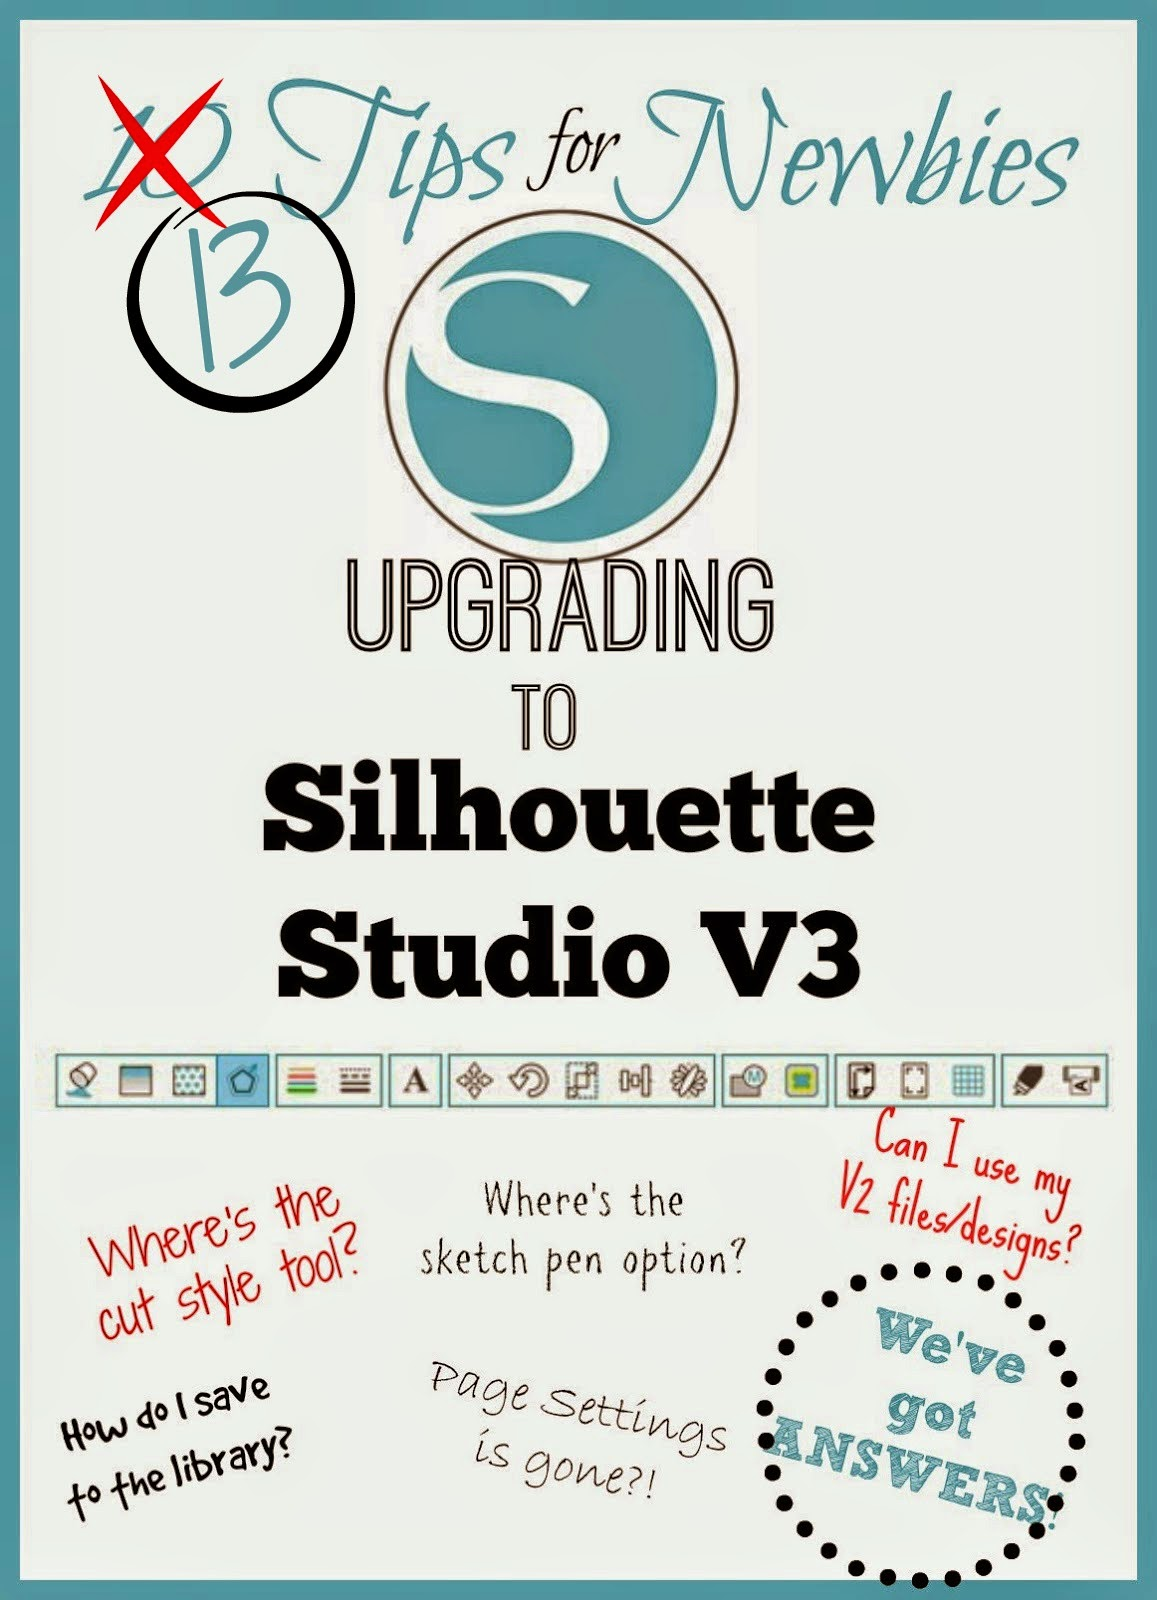 Silhouette Studio, V3, tips, newbies, new